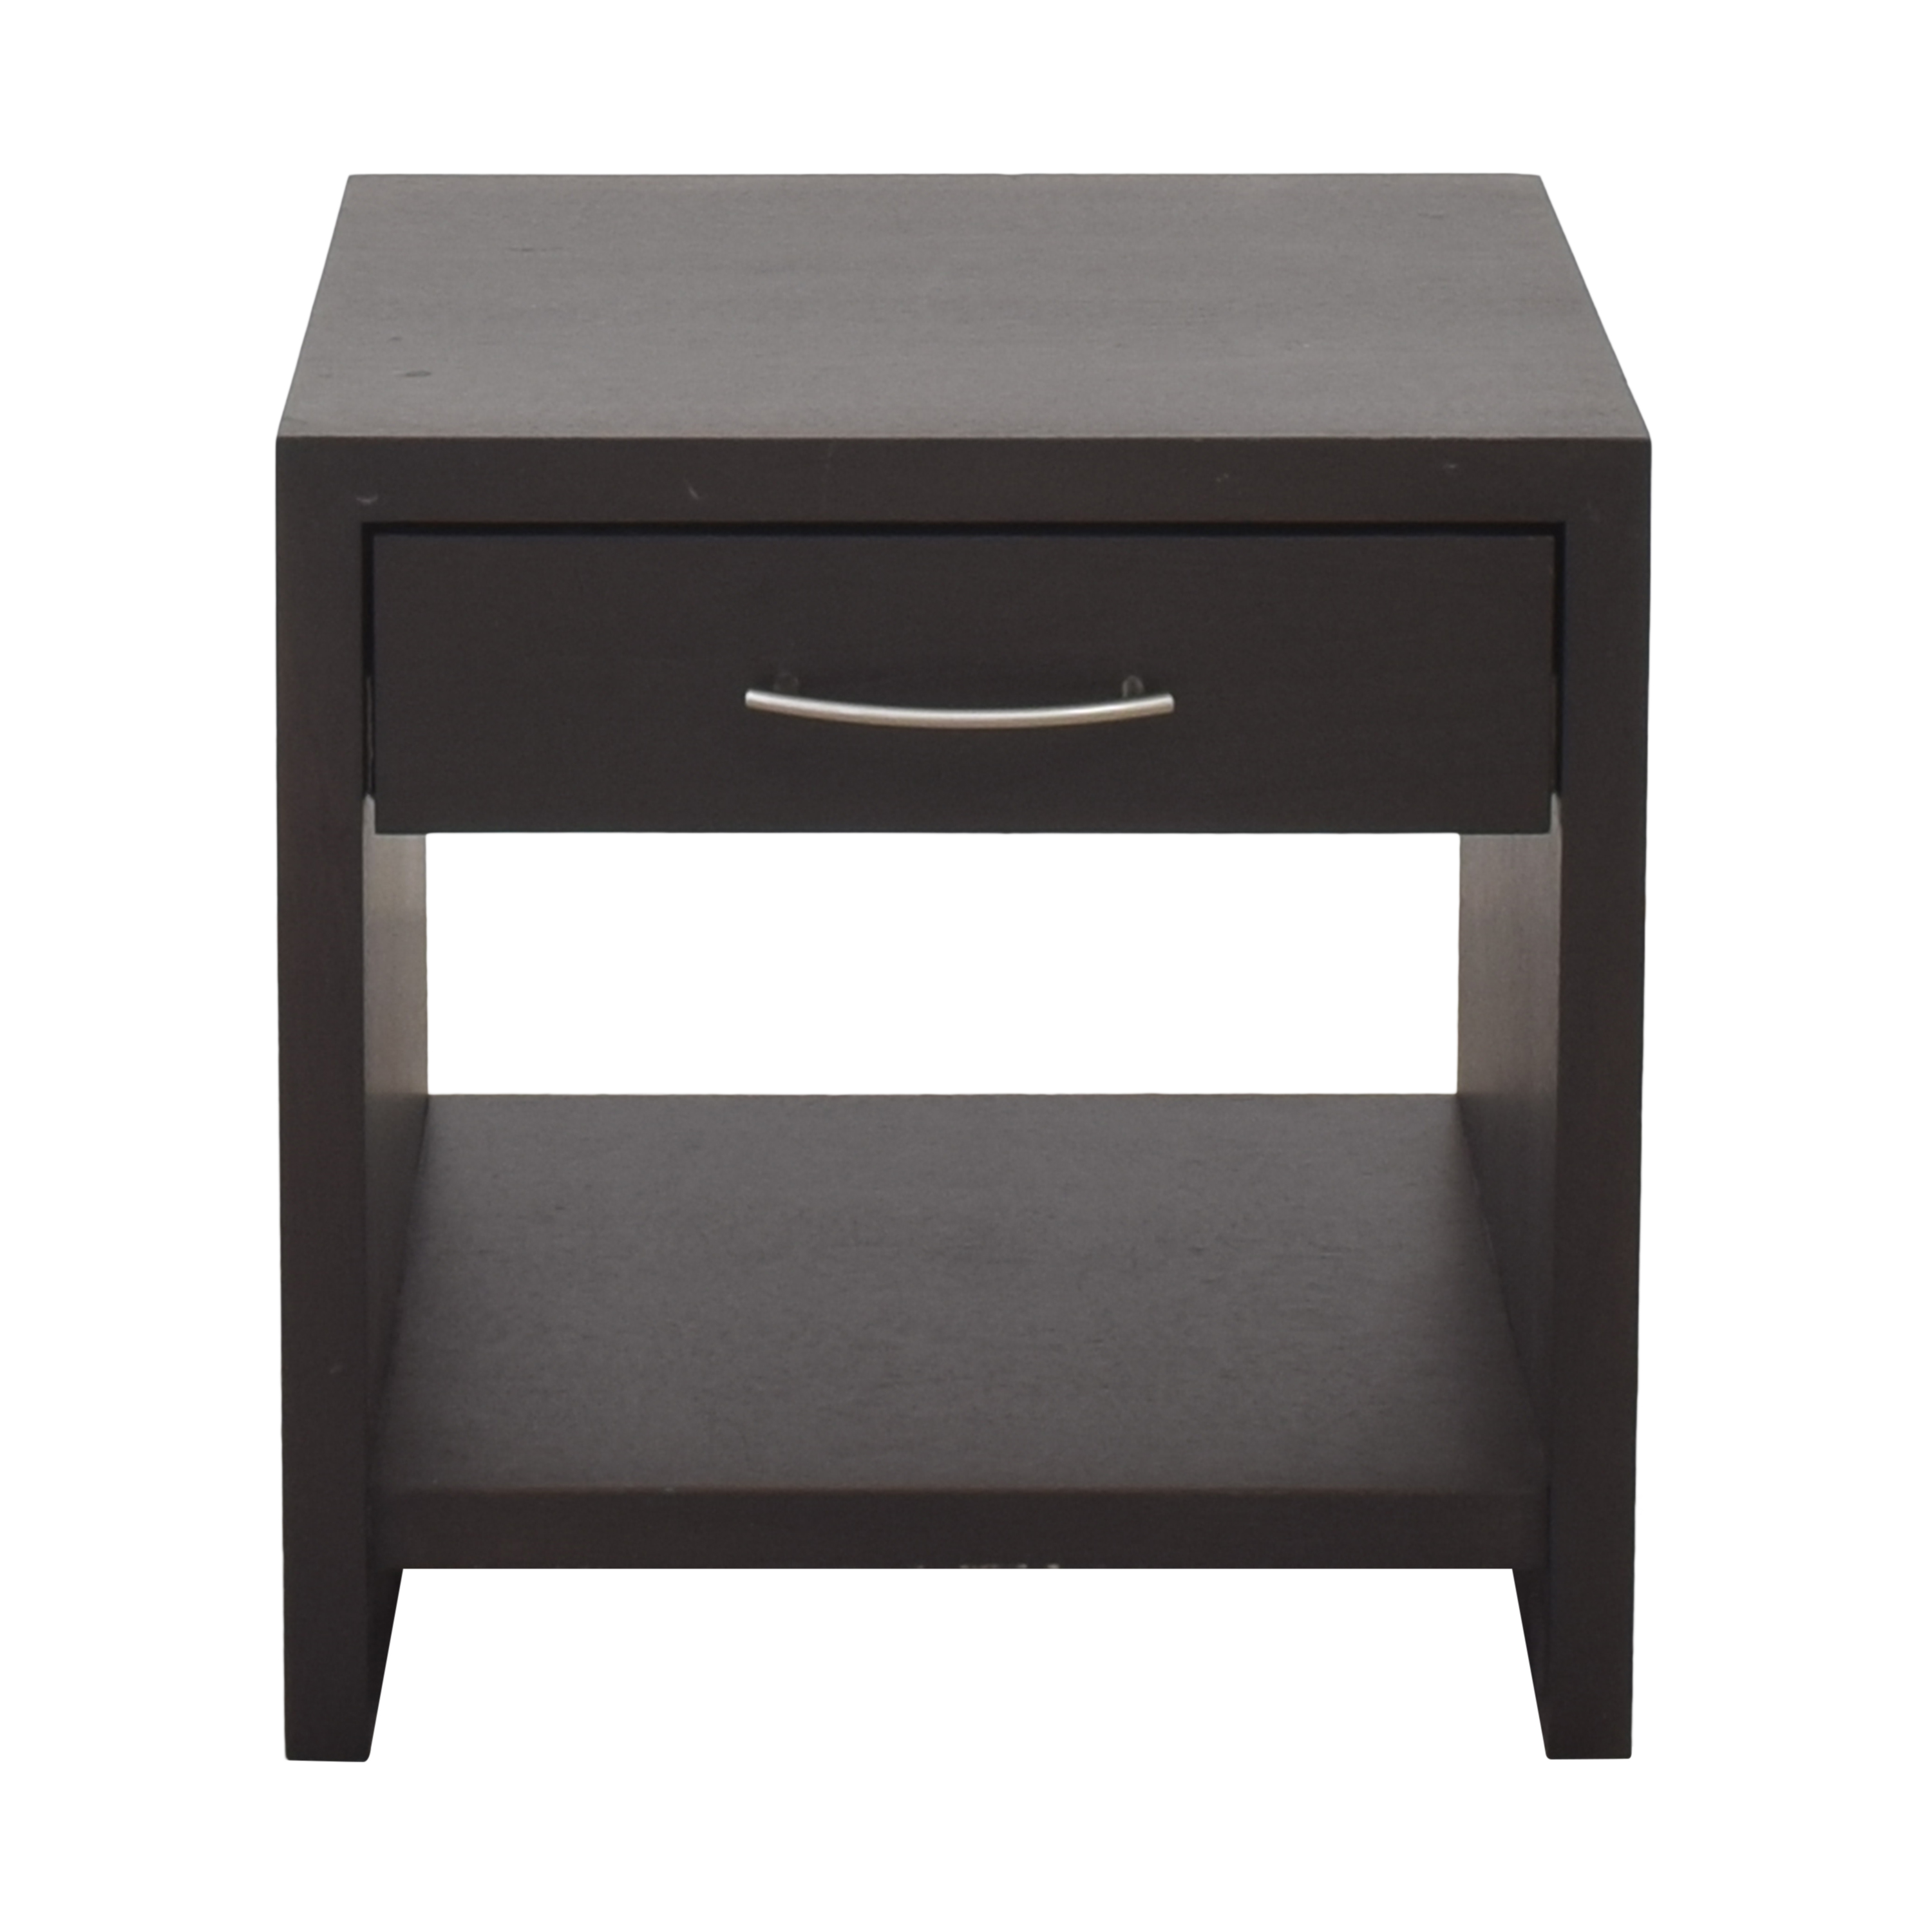 Domus Design Center Domus Design Center Modern Nightstand Tables